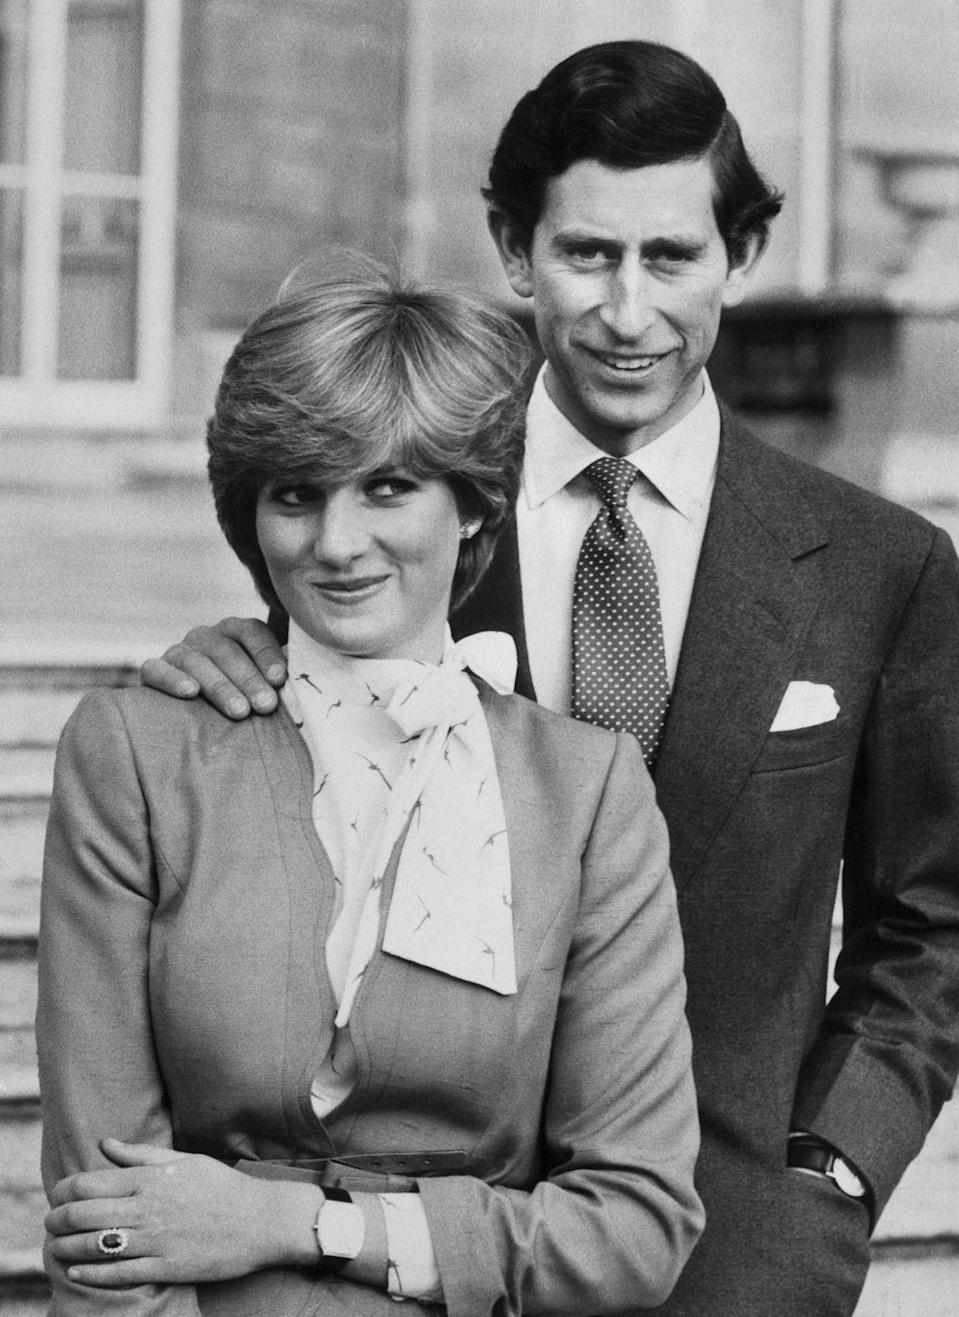 <p>Despite the couple's 12 year age difference, they enjoyed each other's company and Diana accepted Charles's proposal right away. </p>